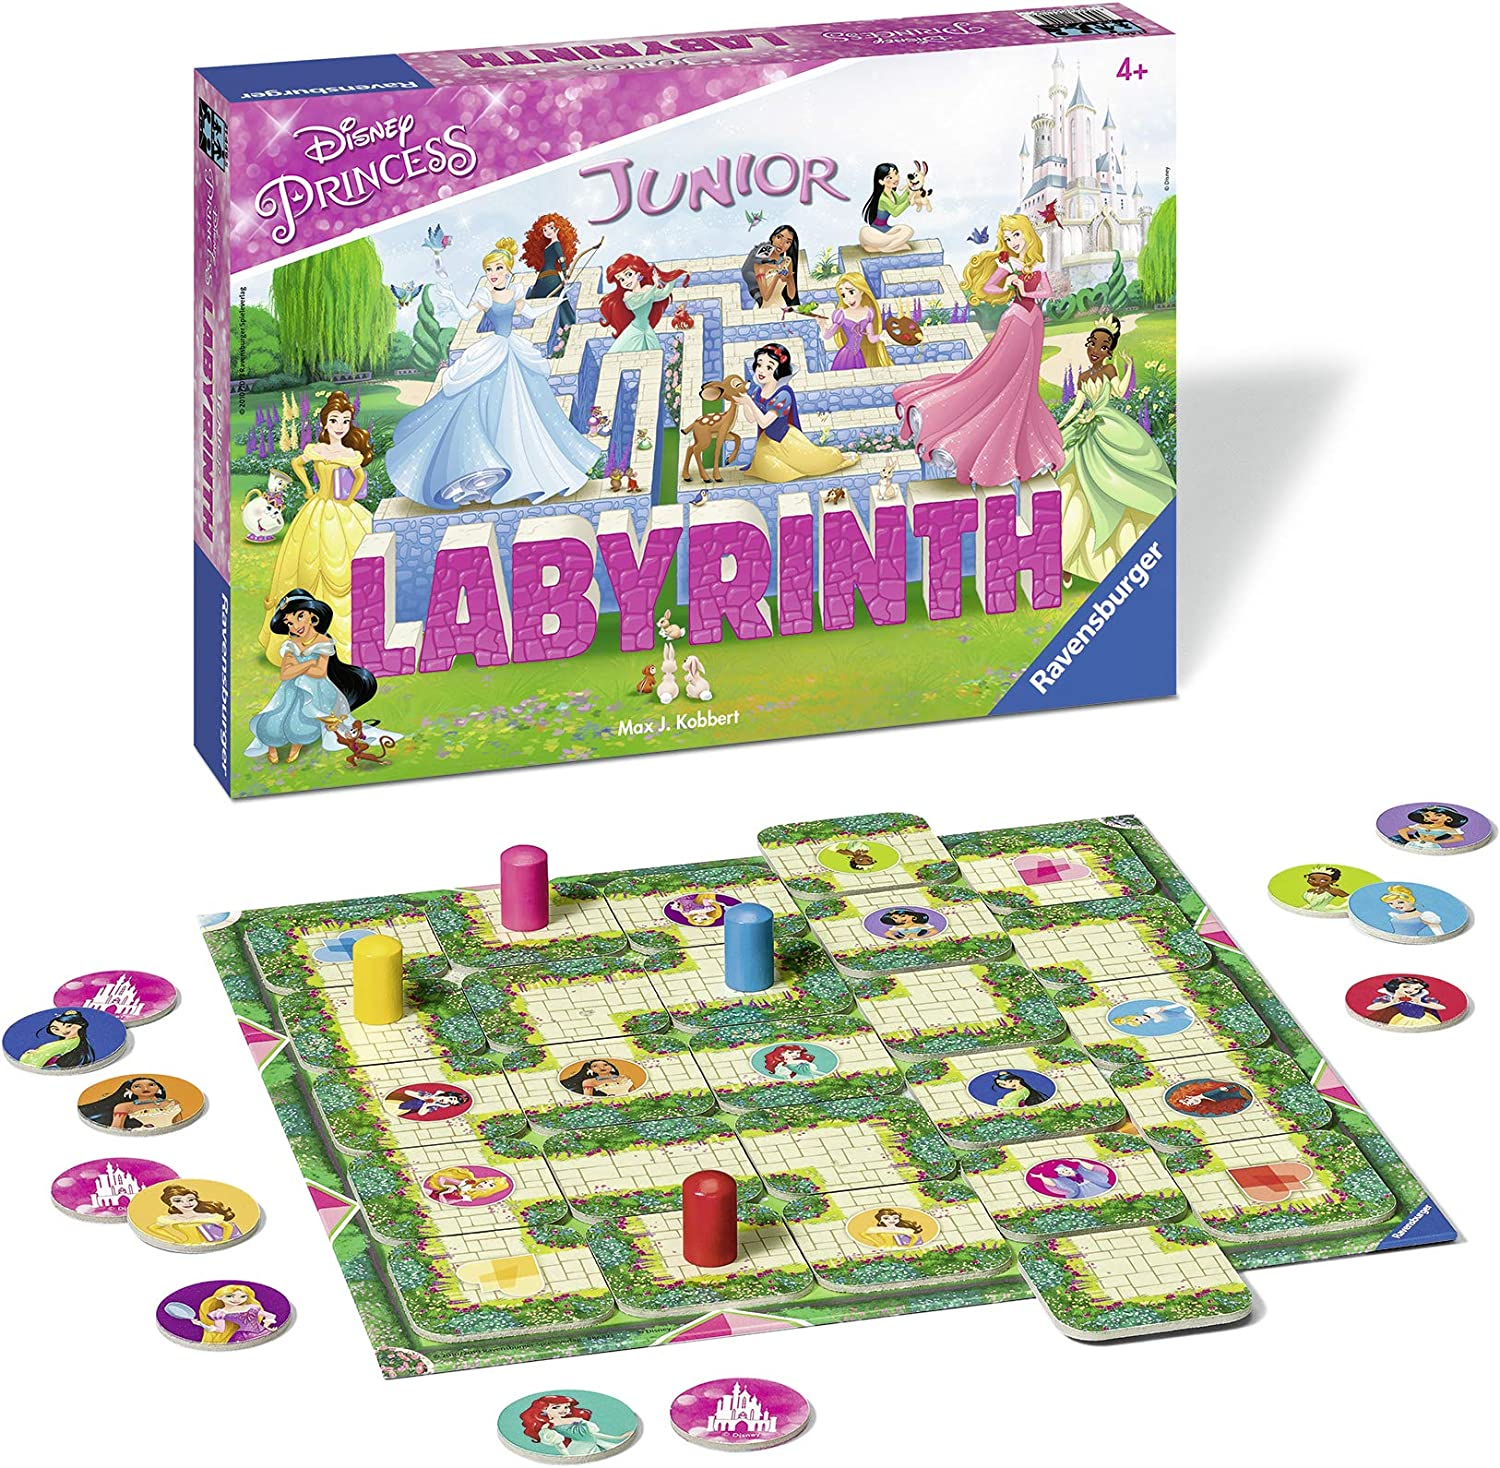 Ravensburger - Labyrinth Junior Disney Princess (21449): Amazon.es: Juguetes y juegos